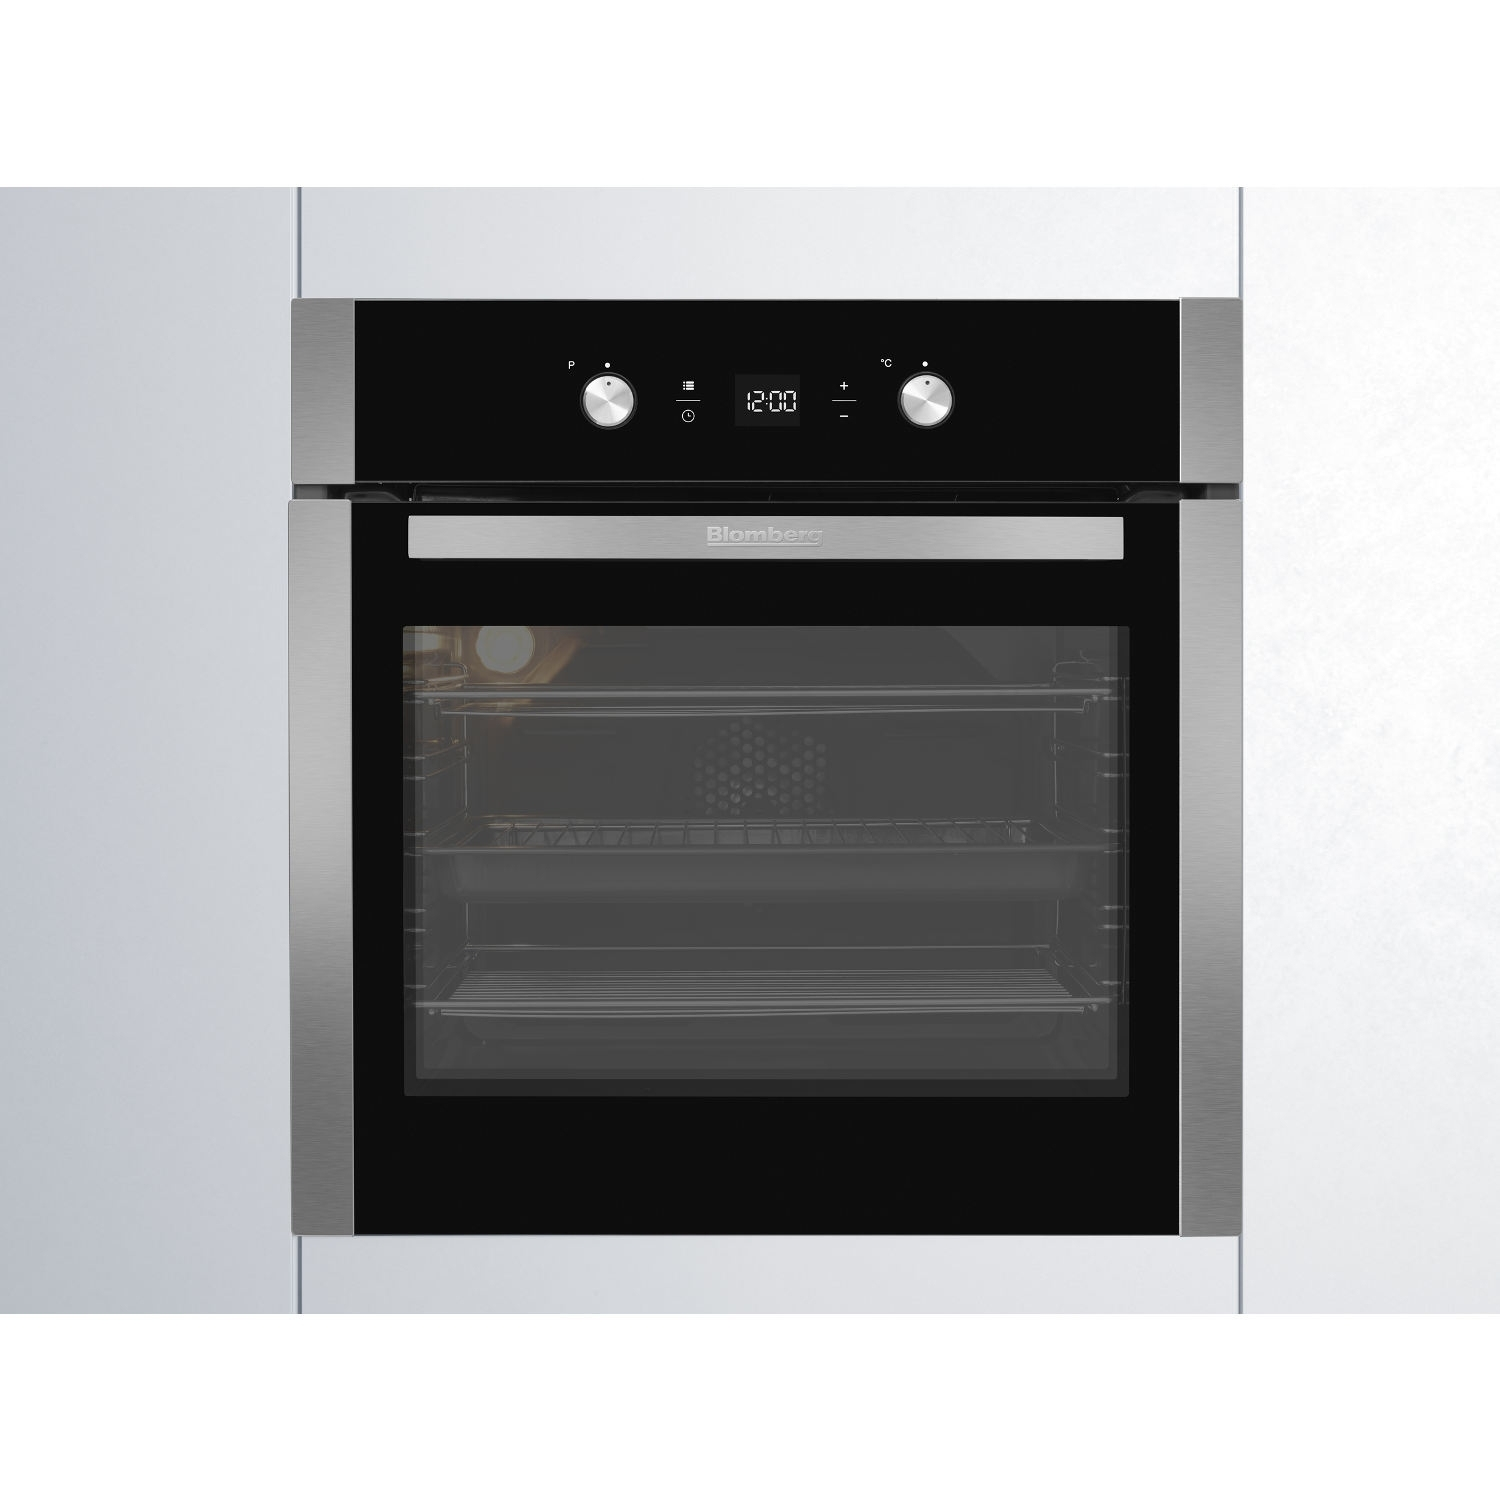 Blomberg OEN9302X 59.4cm Built Electric Single Oven - Stainless Steel - 2